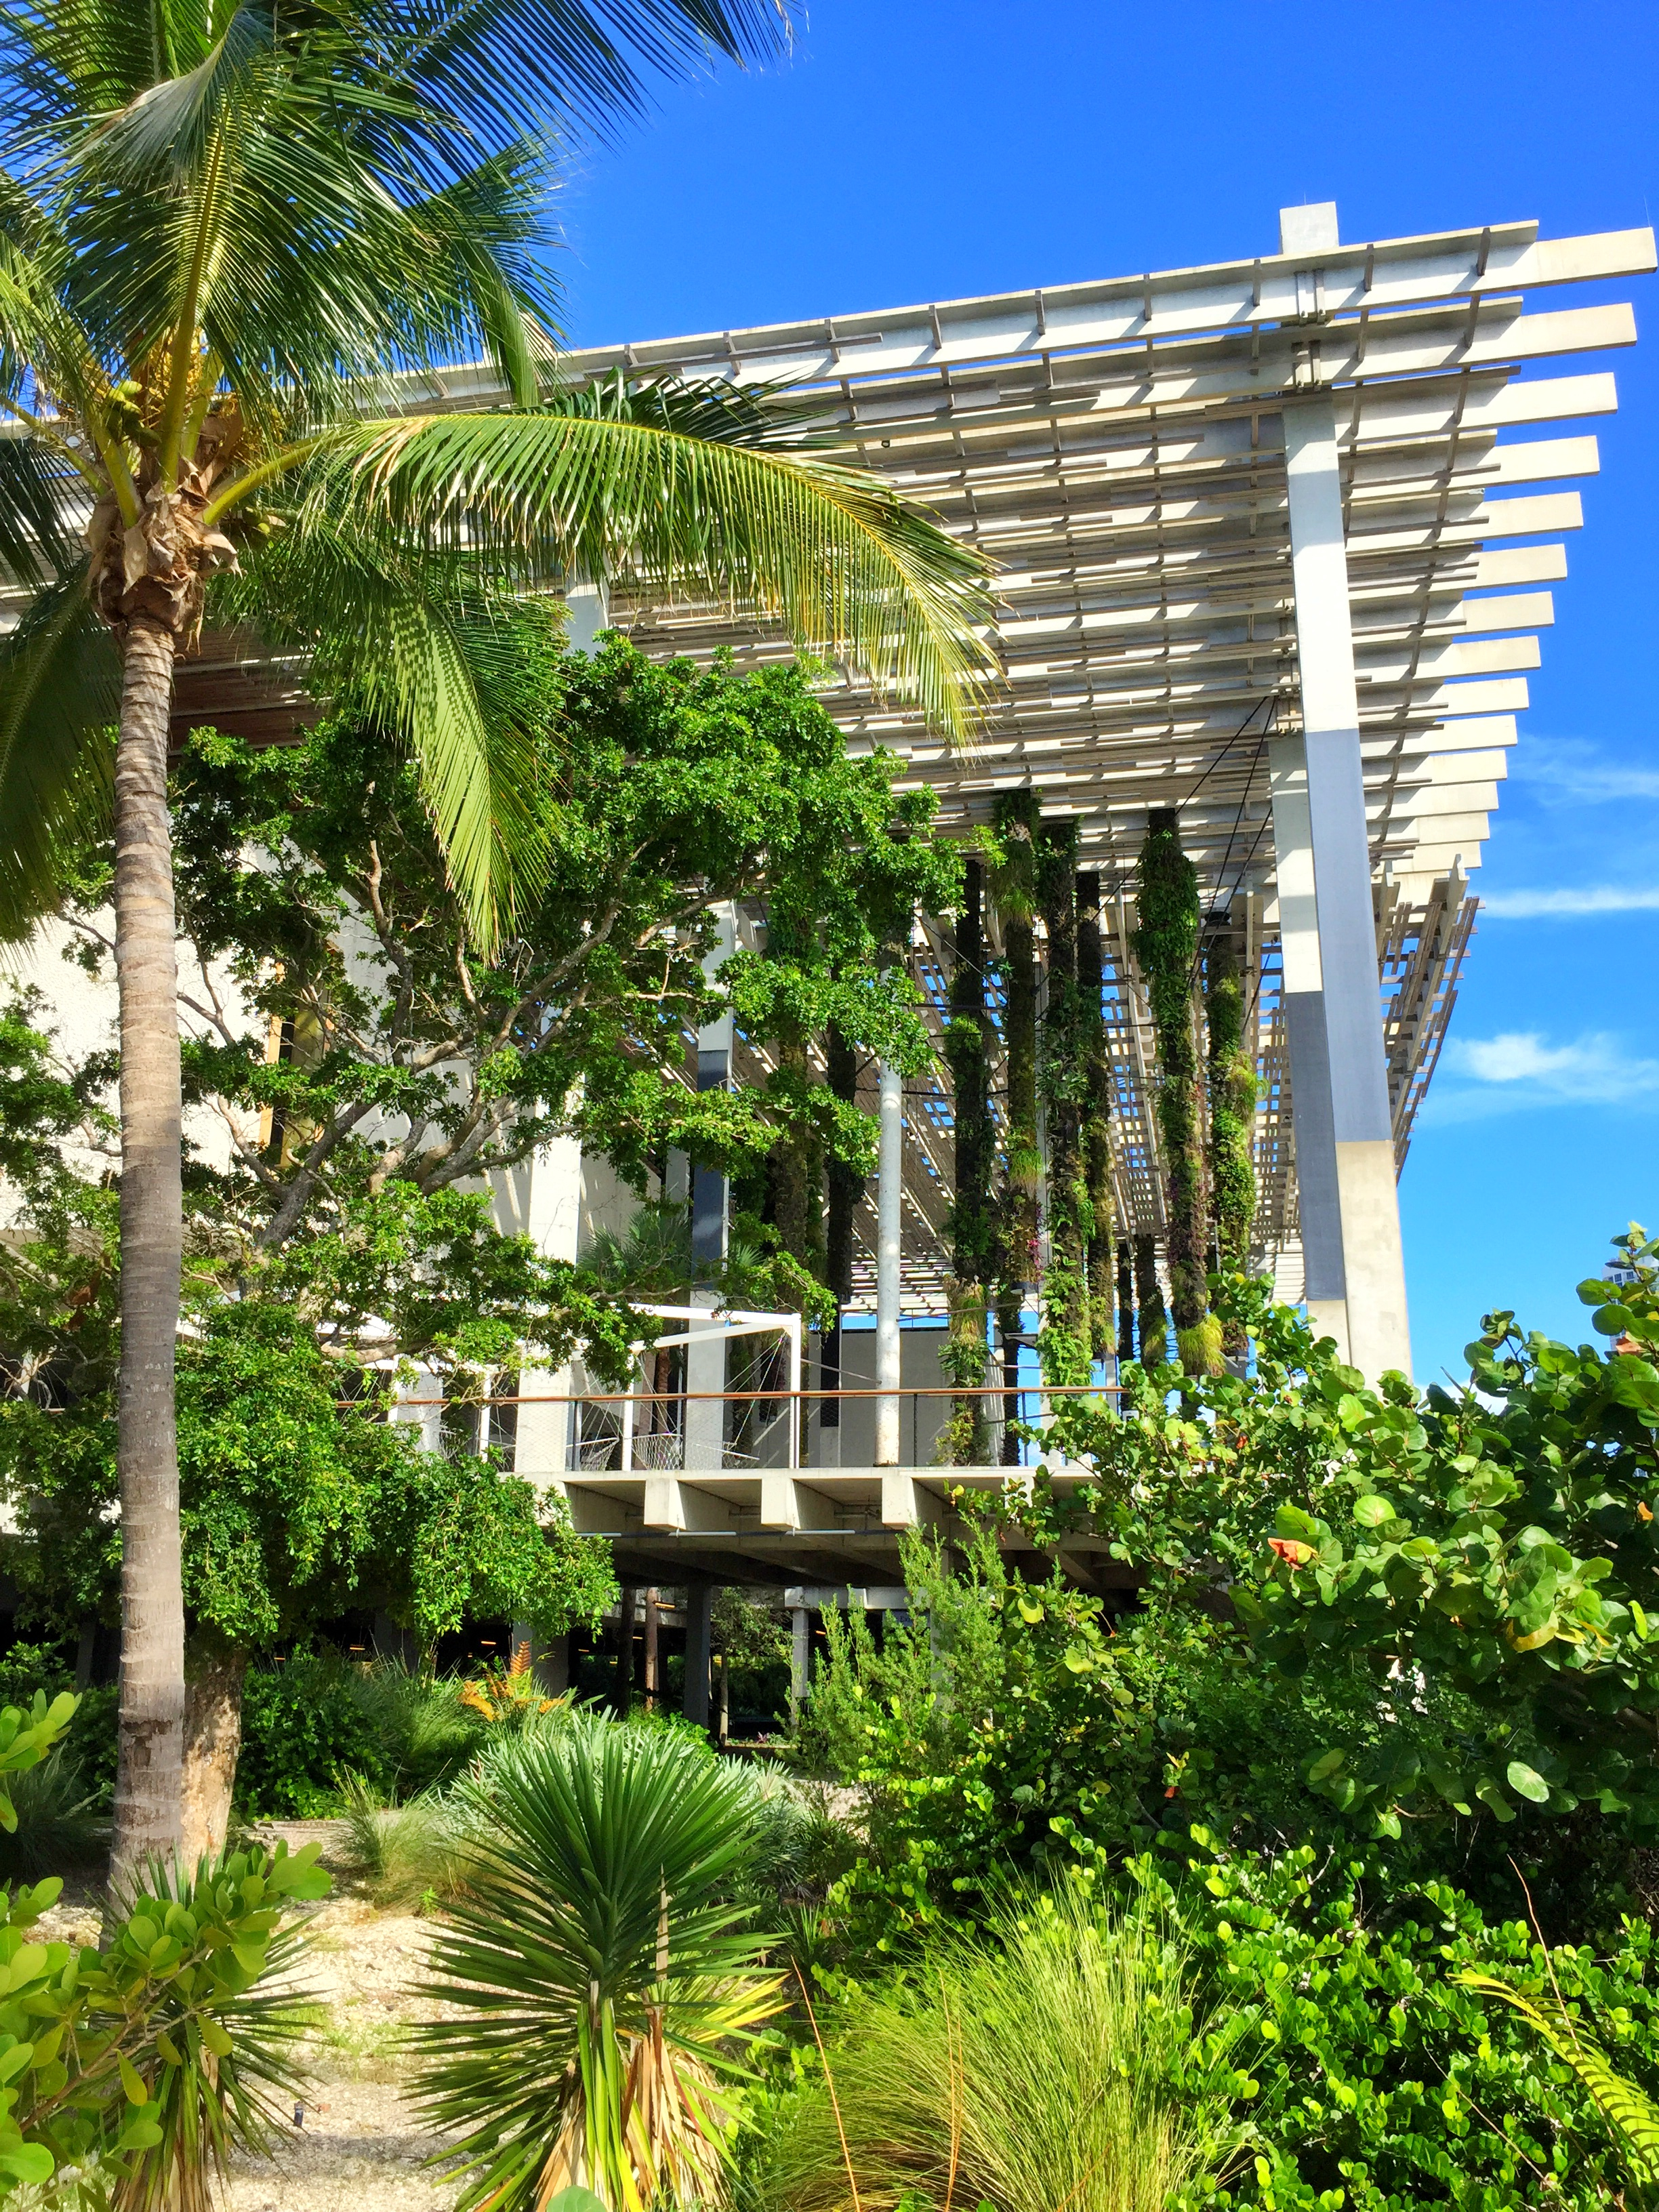 The exterior of the Perez Art Museum of Miami-Dade County, located at 1103 Biscayne Boulevard, Miami, FL 33132, designed by architectural firm, Herzog & de Meuron.